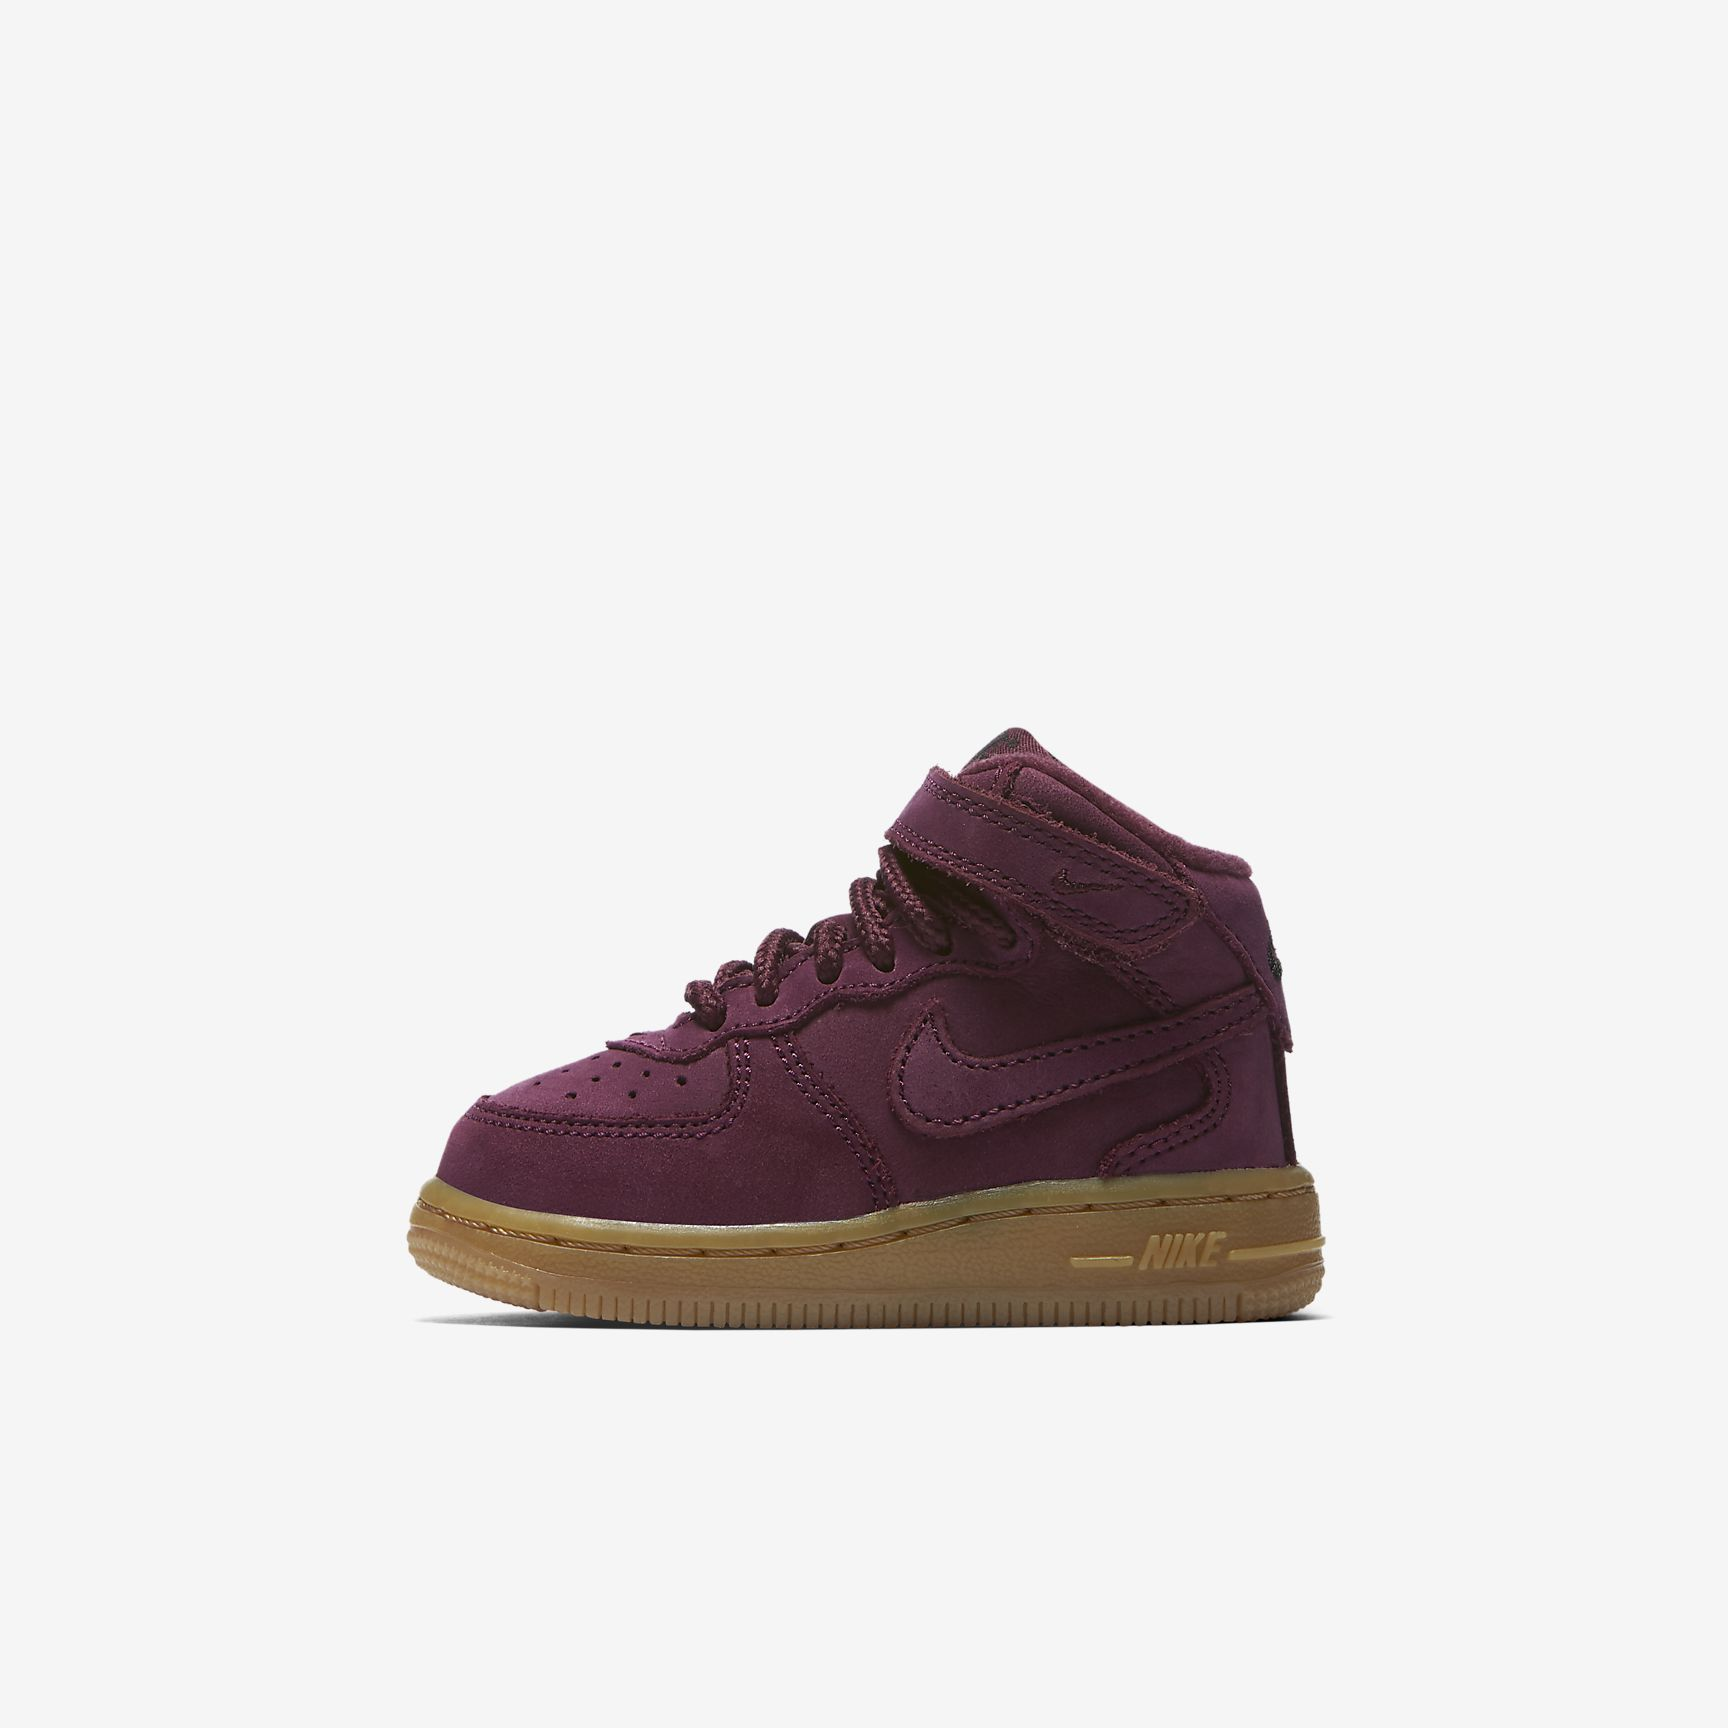 new style cadab 8e3d5 Nike Air Force 1 Mid WB Infant/Toddler Shoe   Prince Kale ...